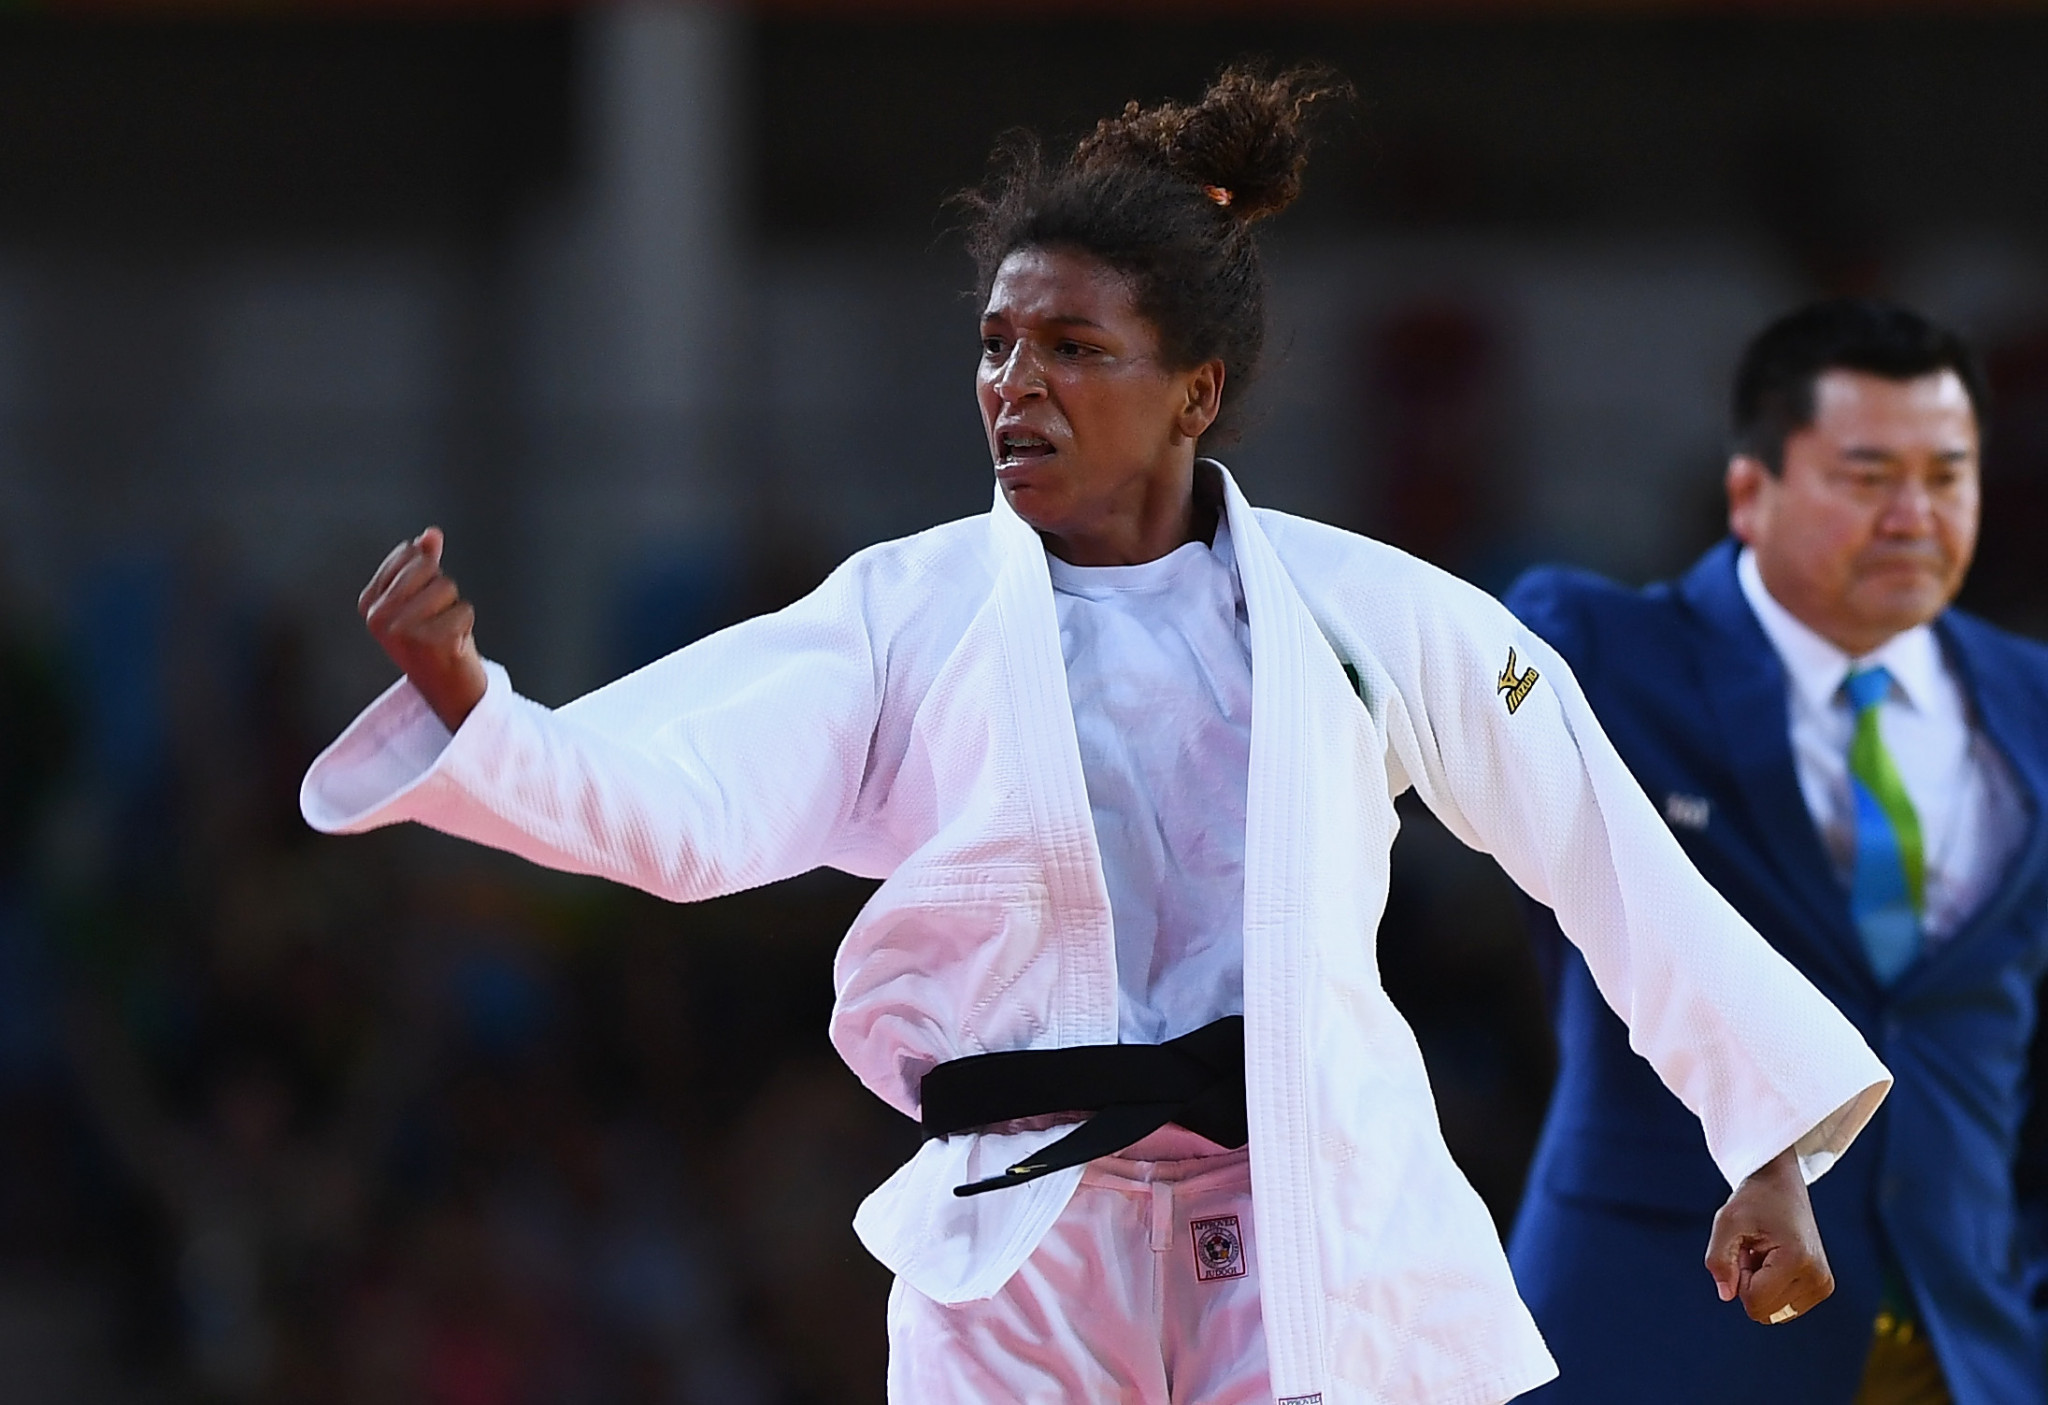 Olympic judo gold medallist poised for CAS appeal against two-year doping ban